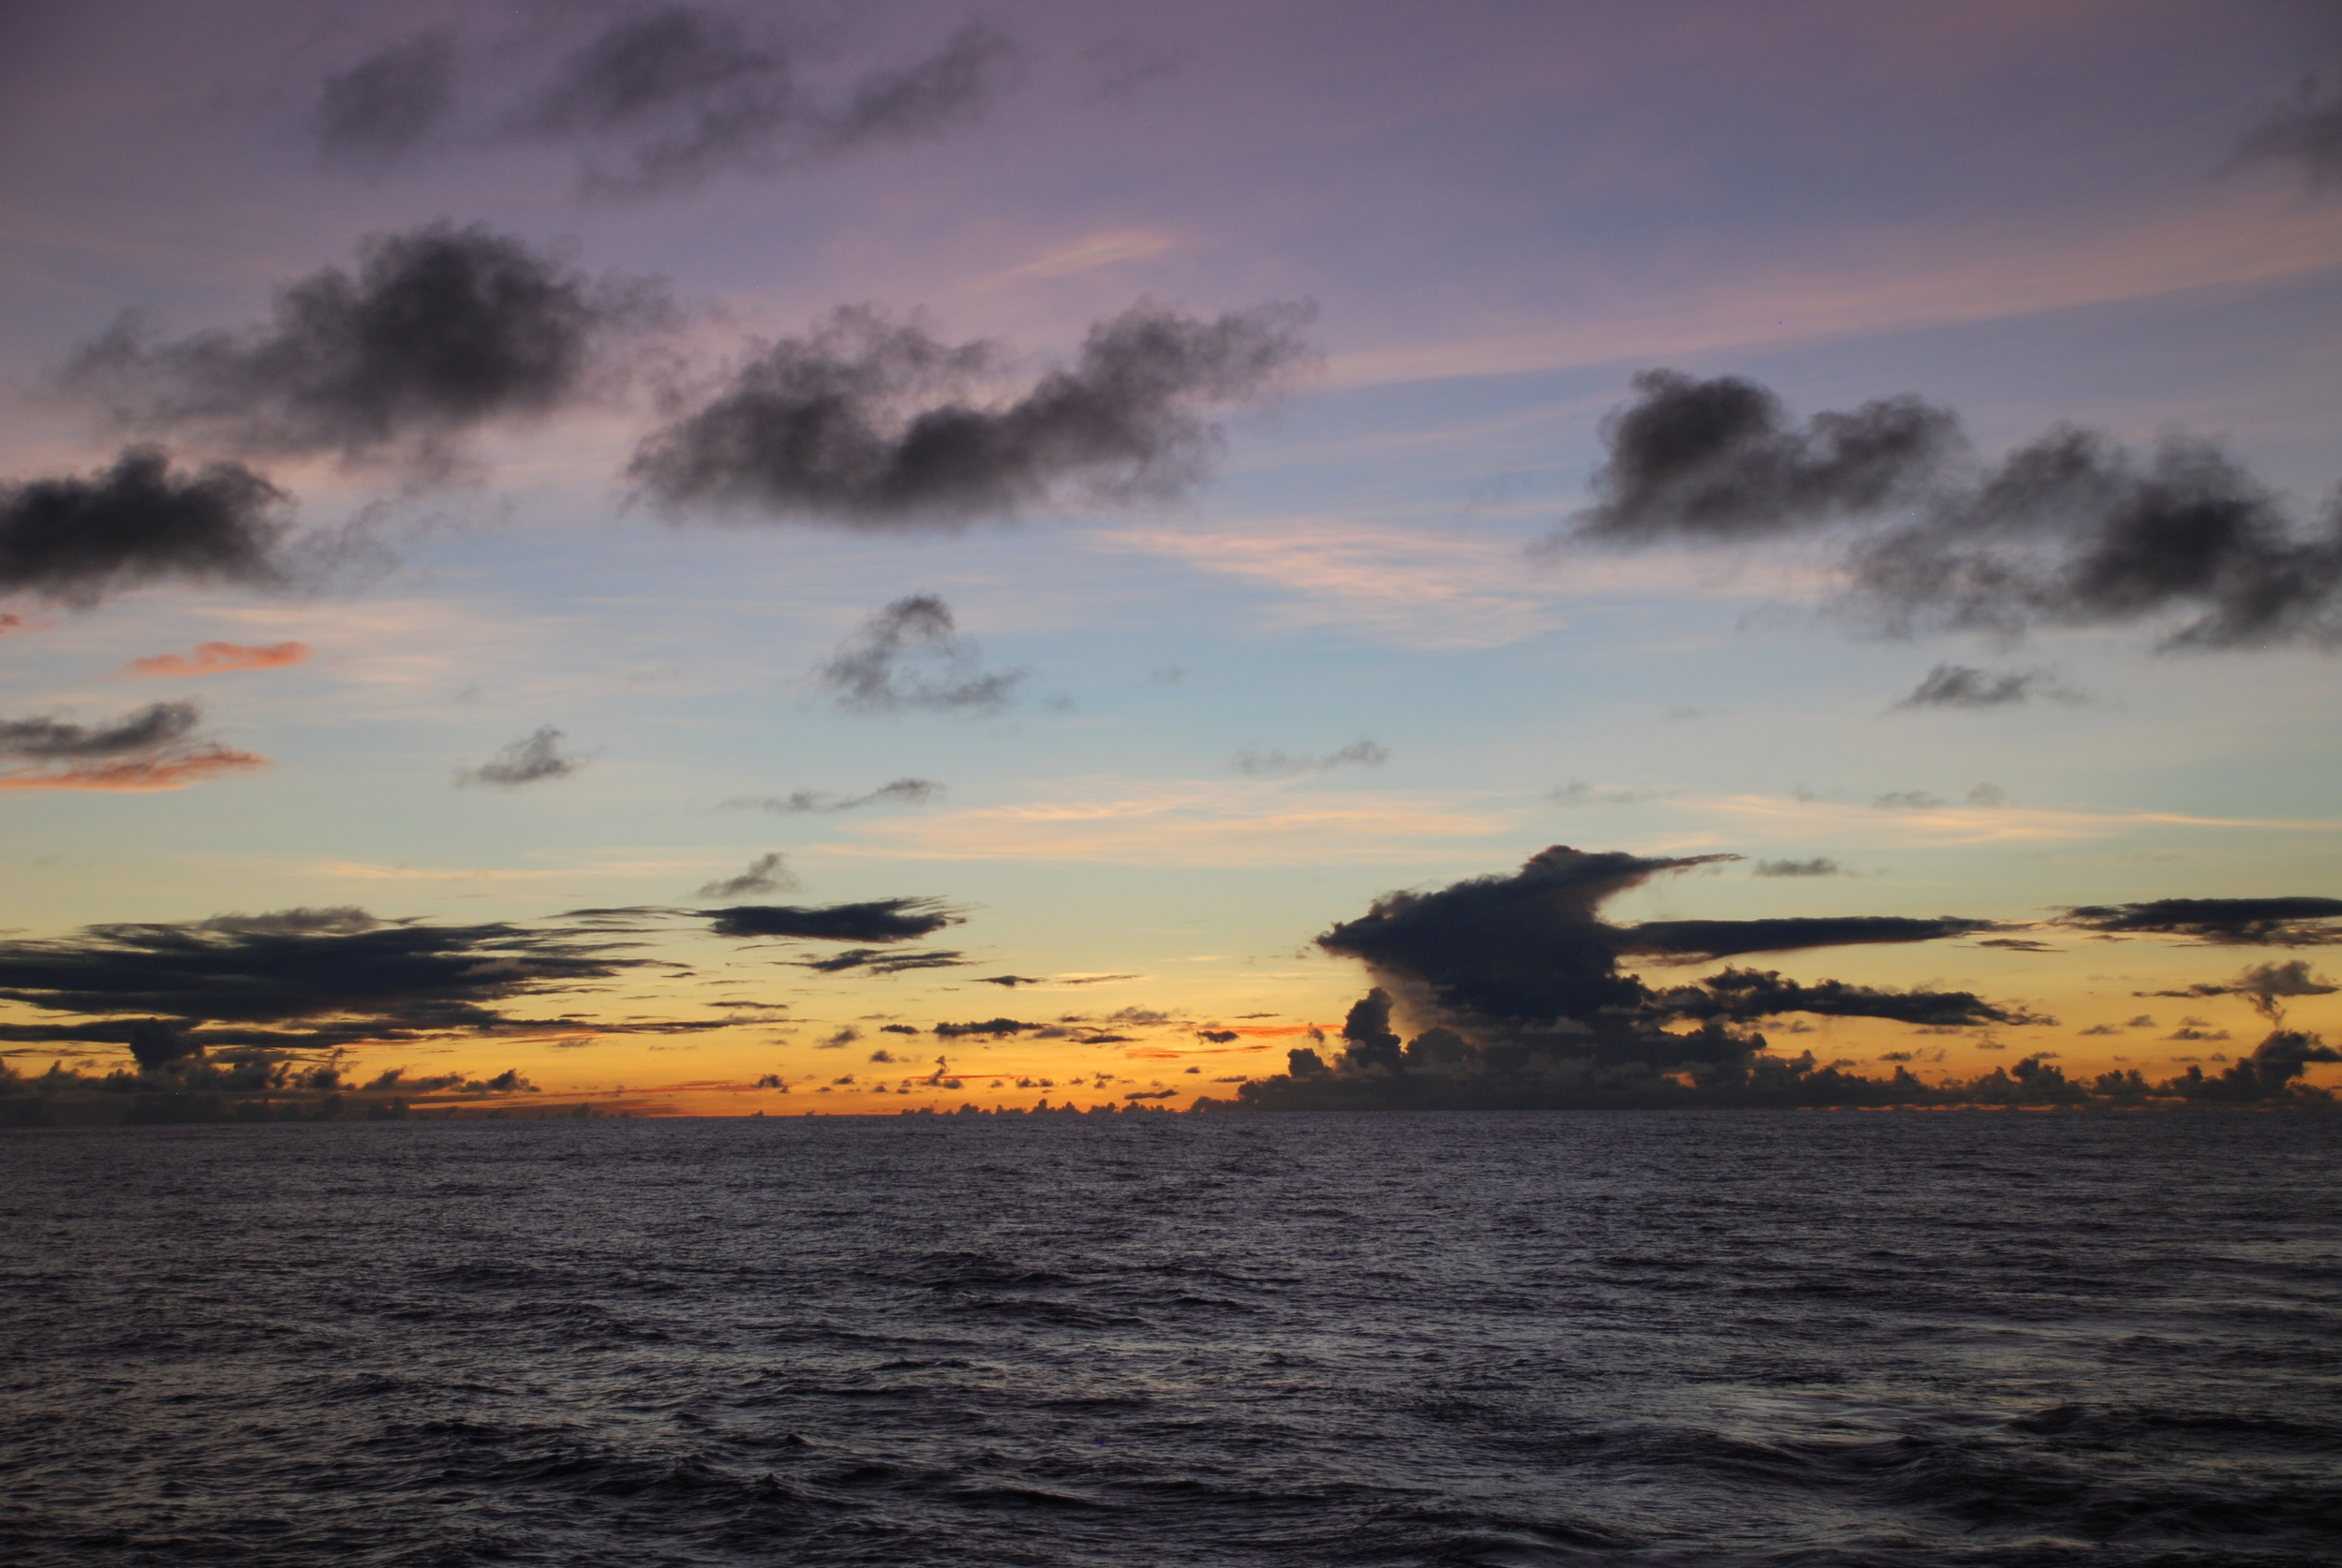 Sunrise over the Mariana Trench